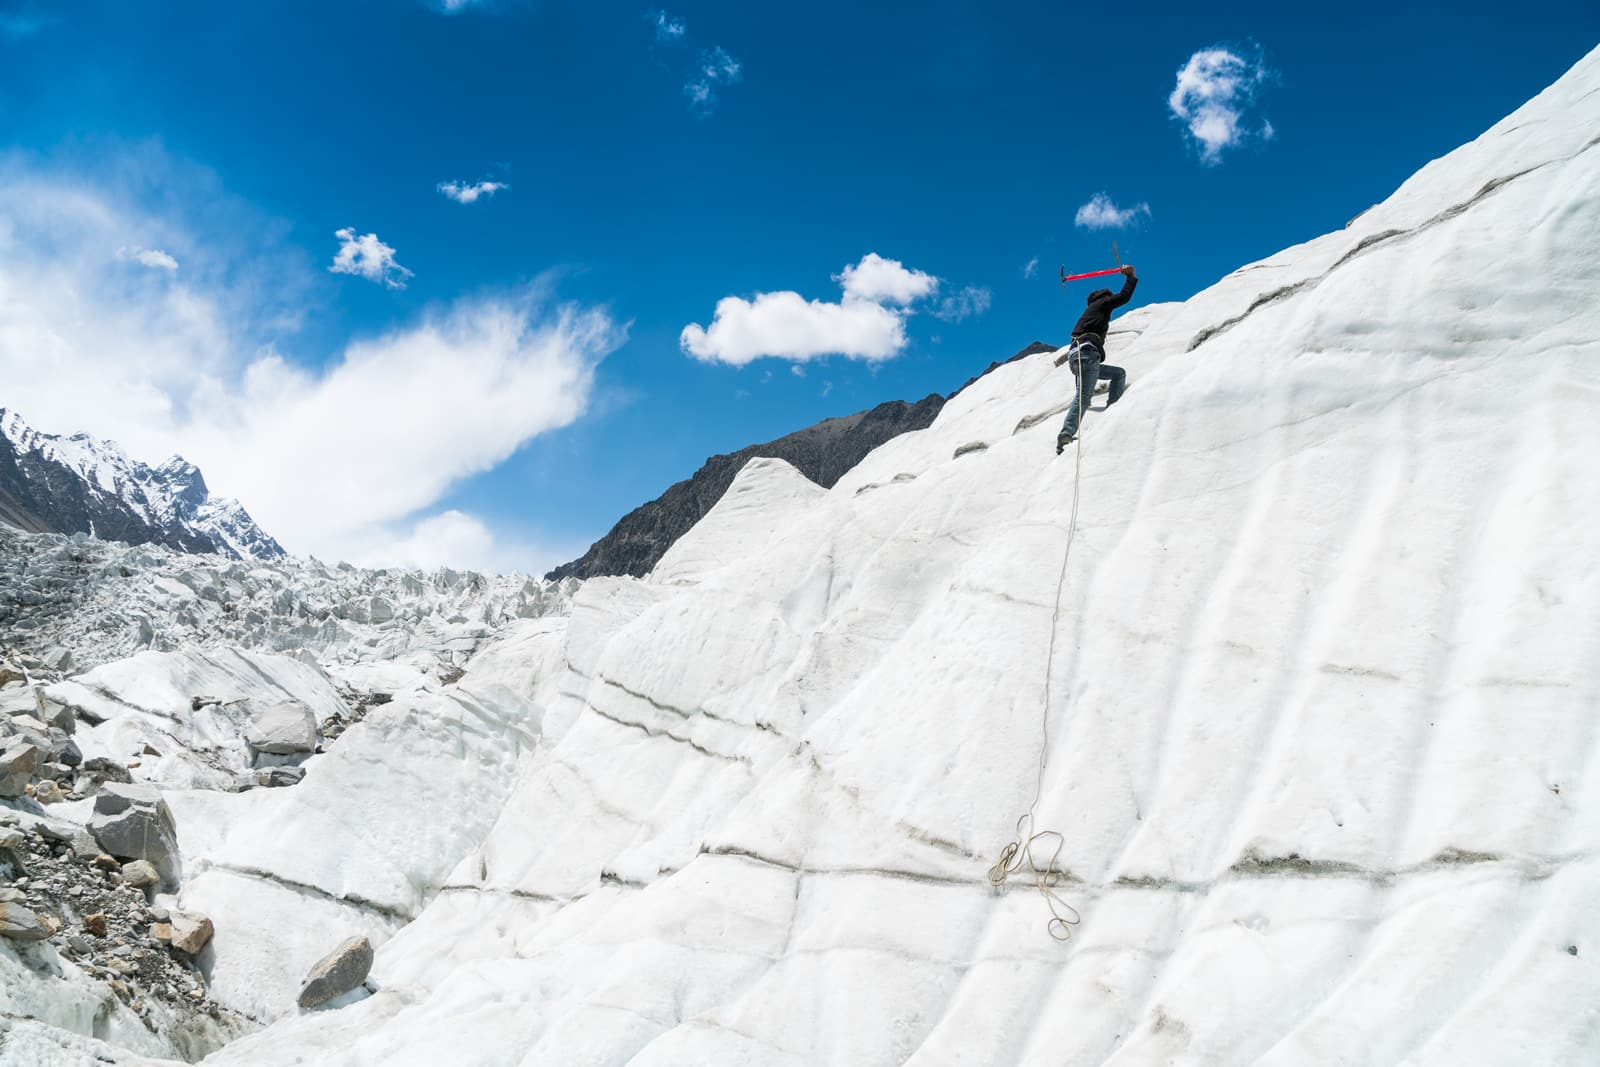 Homestay in Pakistan - Rehman ice climbing on the white glacier in Gilgit Baltistan - Lost With Purpose travel blog